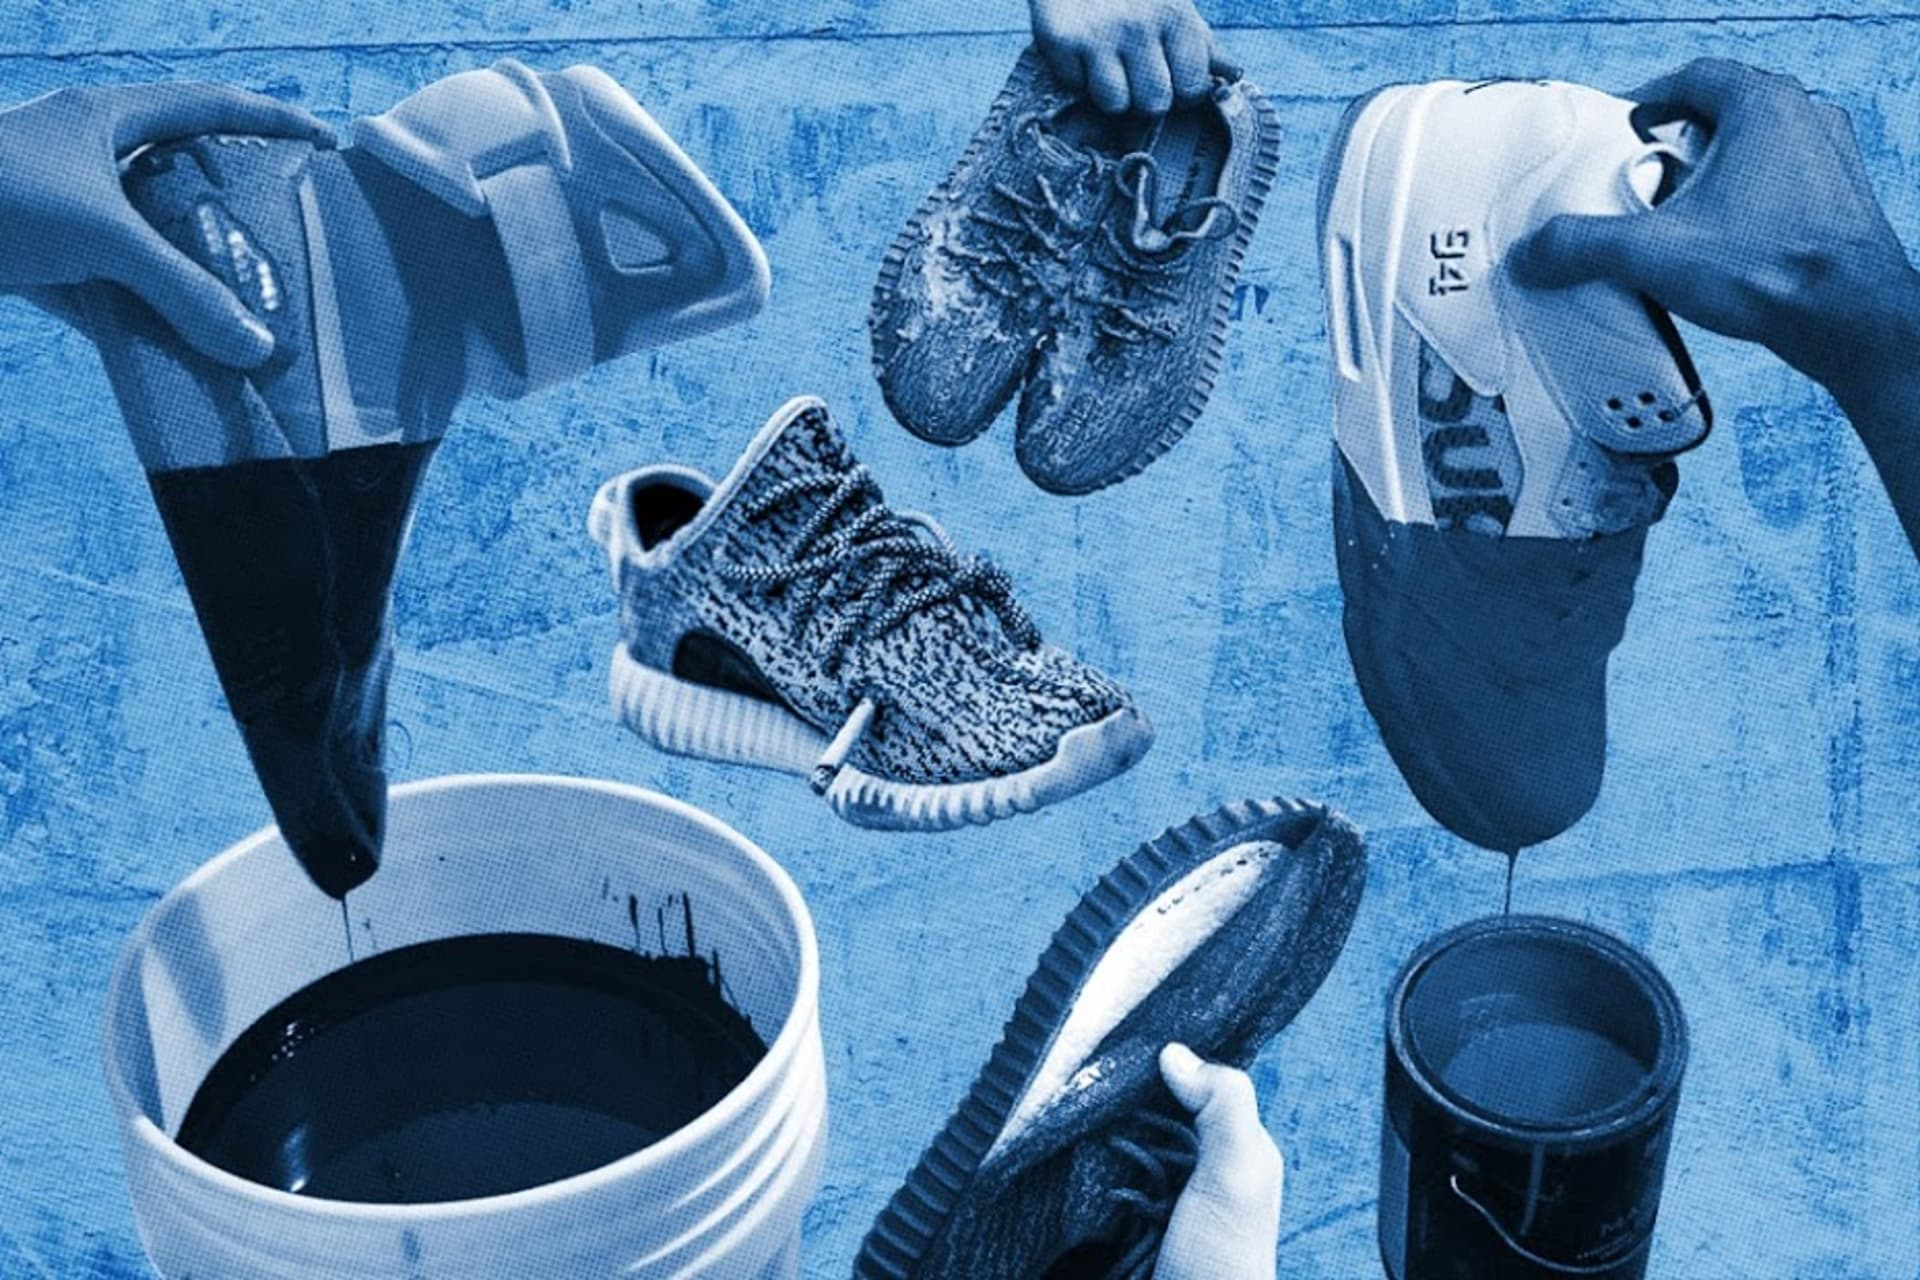 8c3f4b8e6a551 Every year our obsession with sneakers brings us closer and closer to the  edge. 2015 was no exception. There were ups and downs within